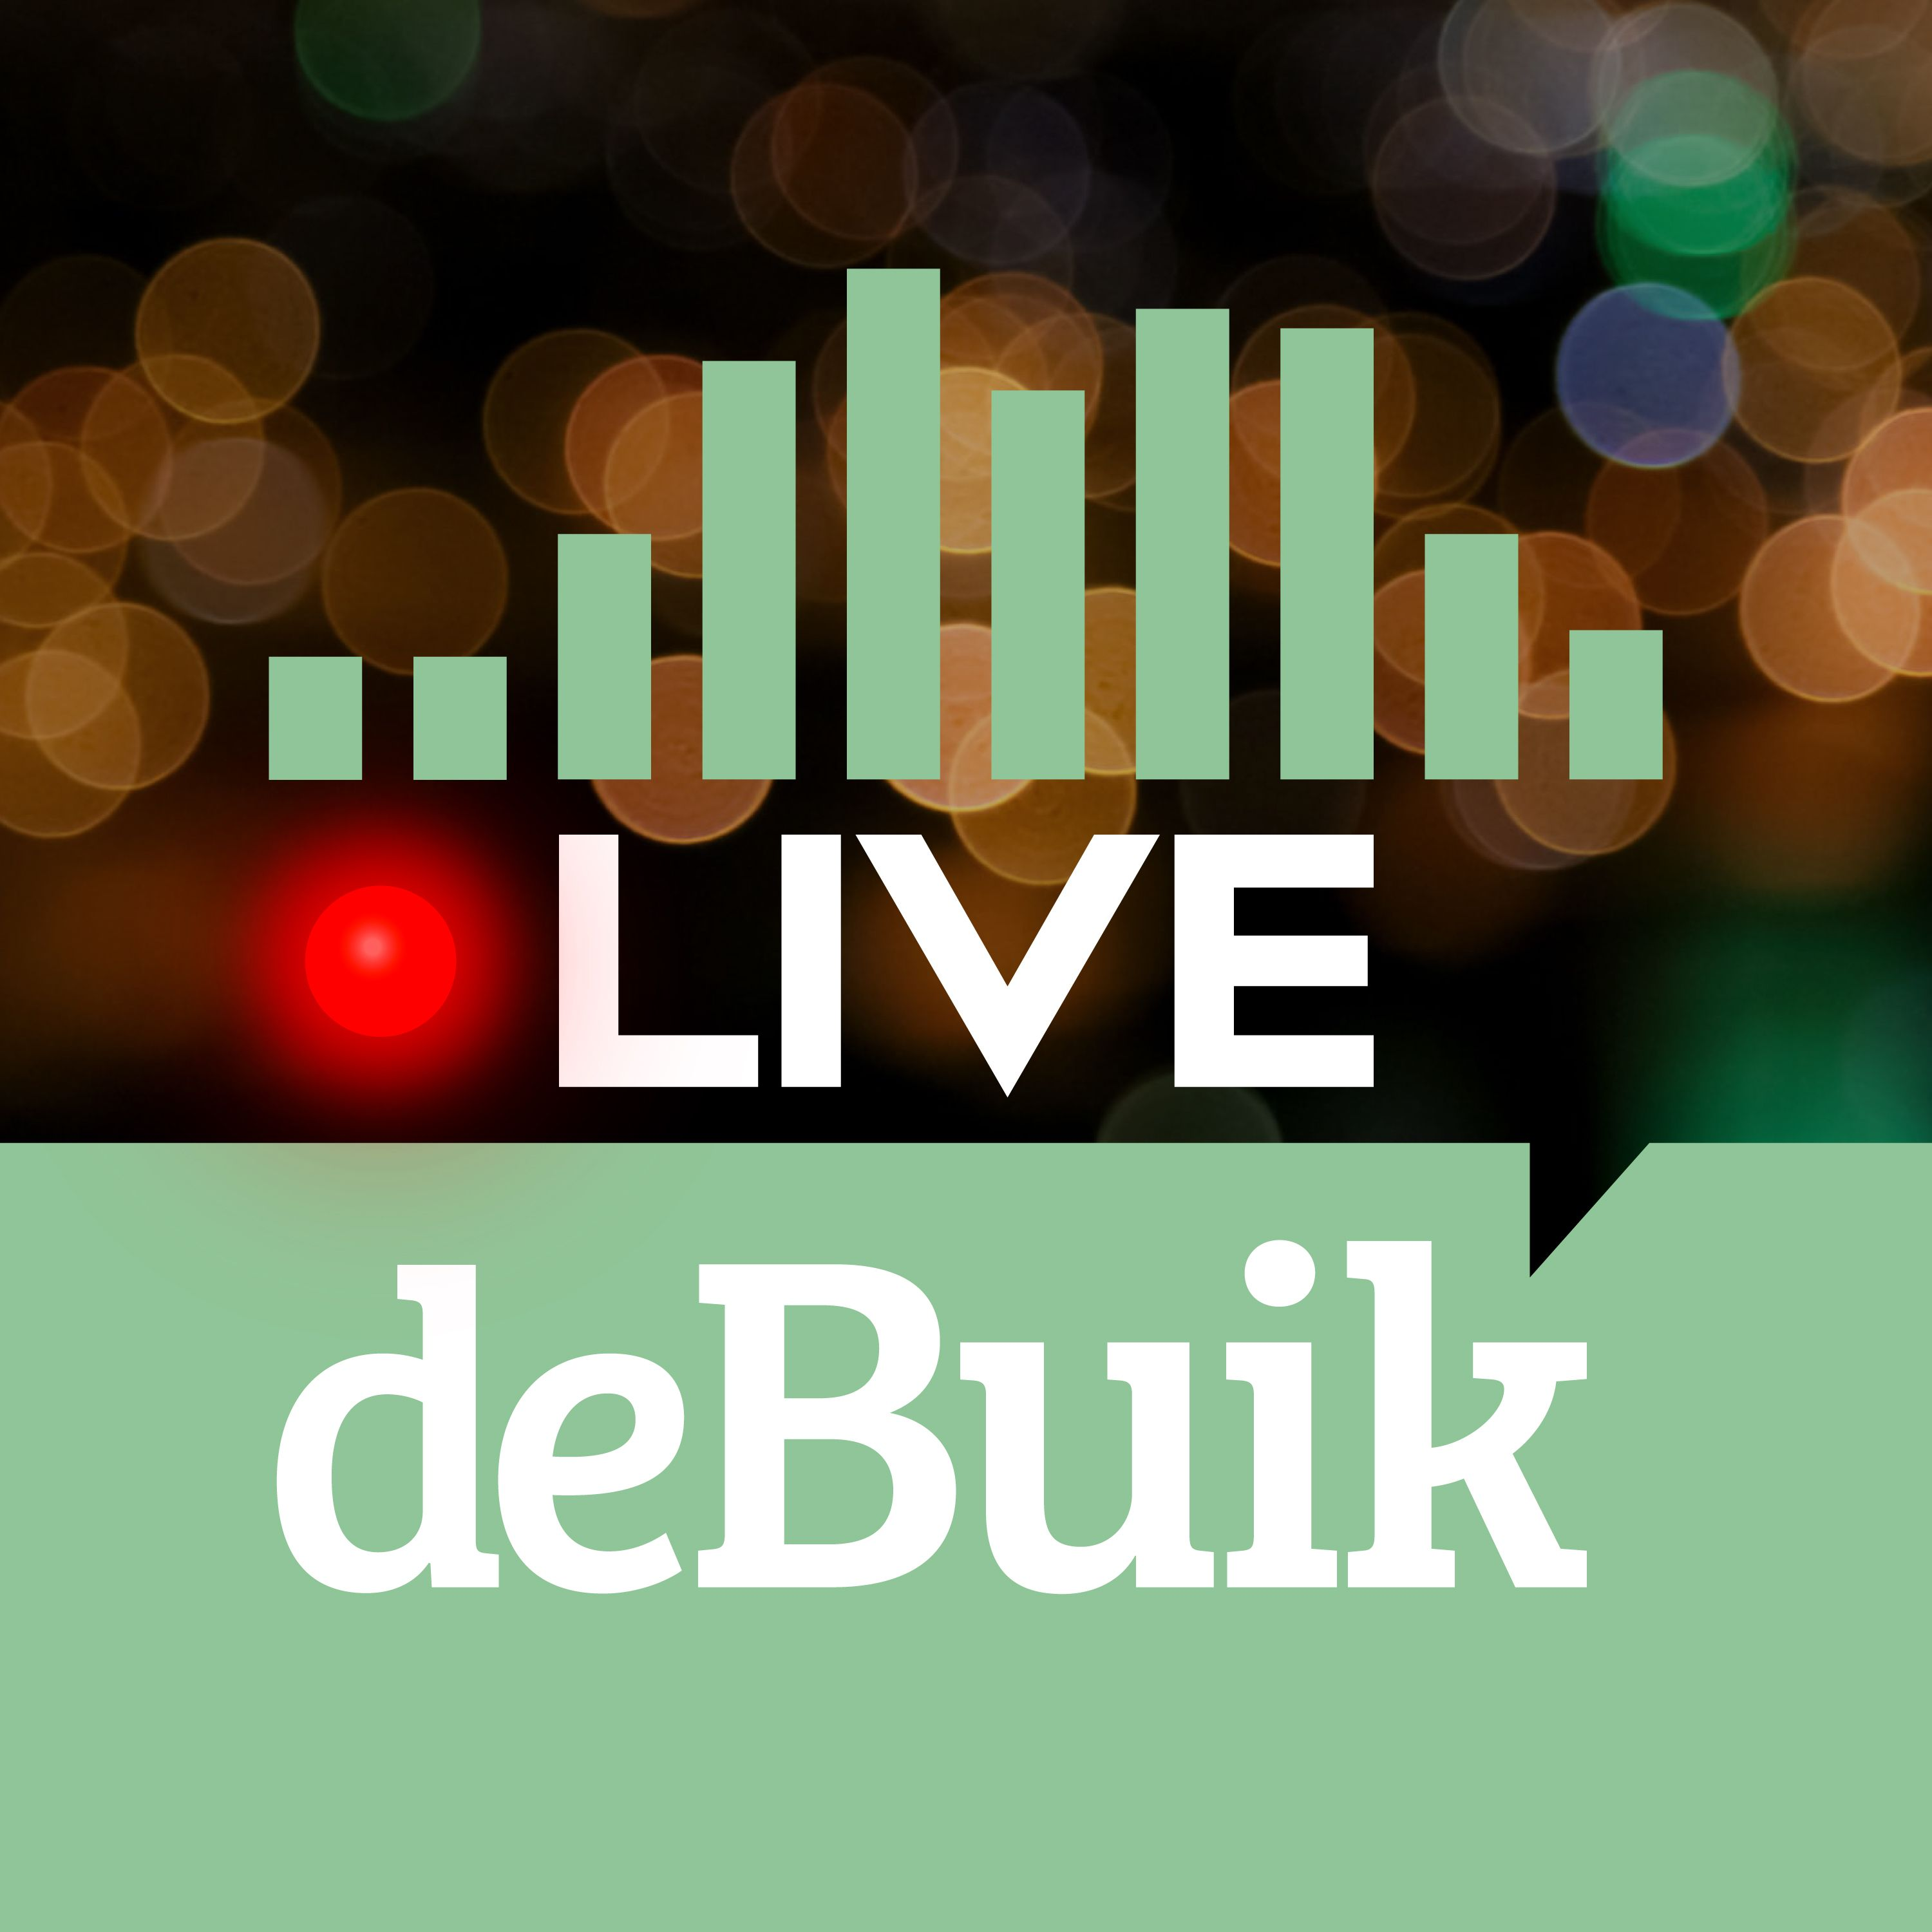 de Buik Live logo